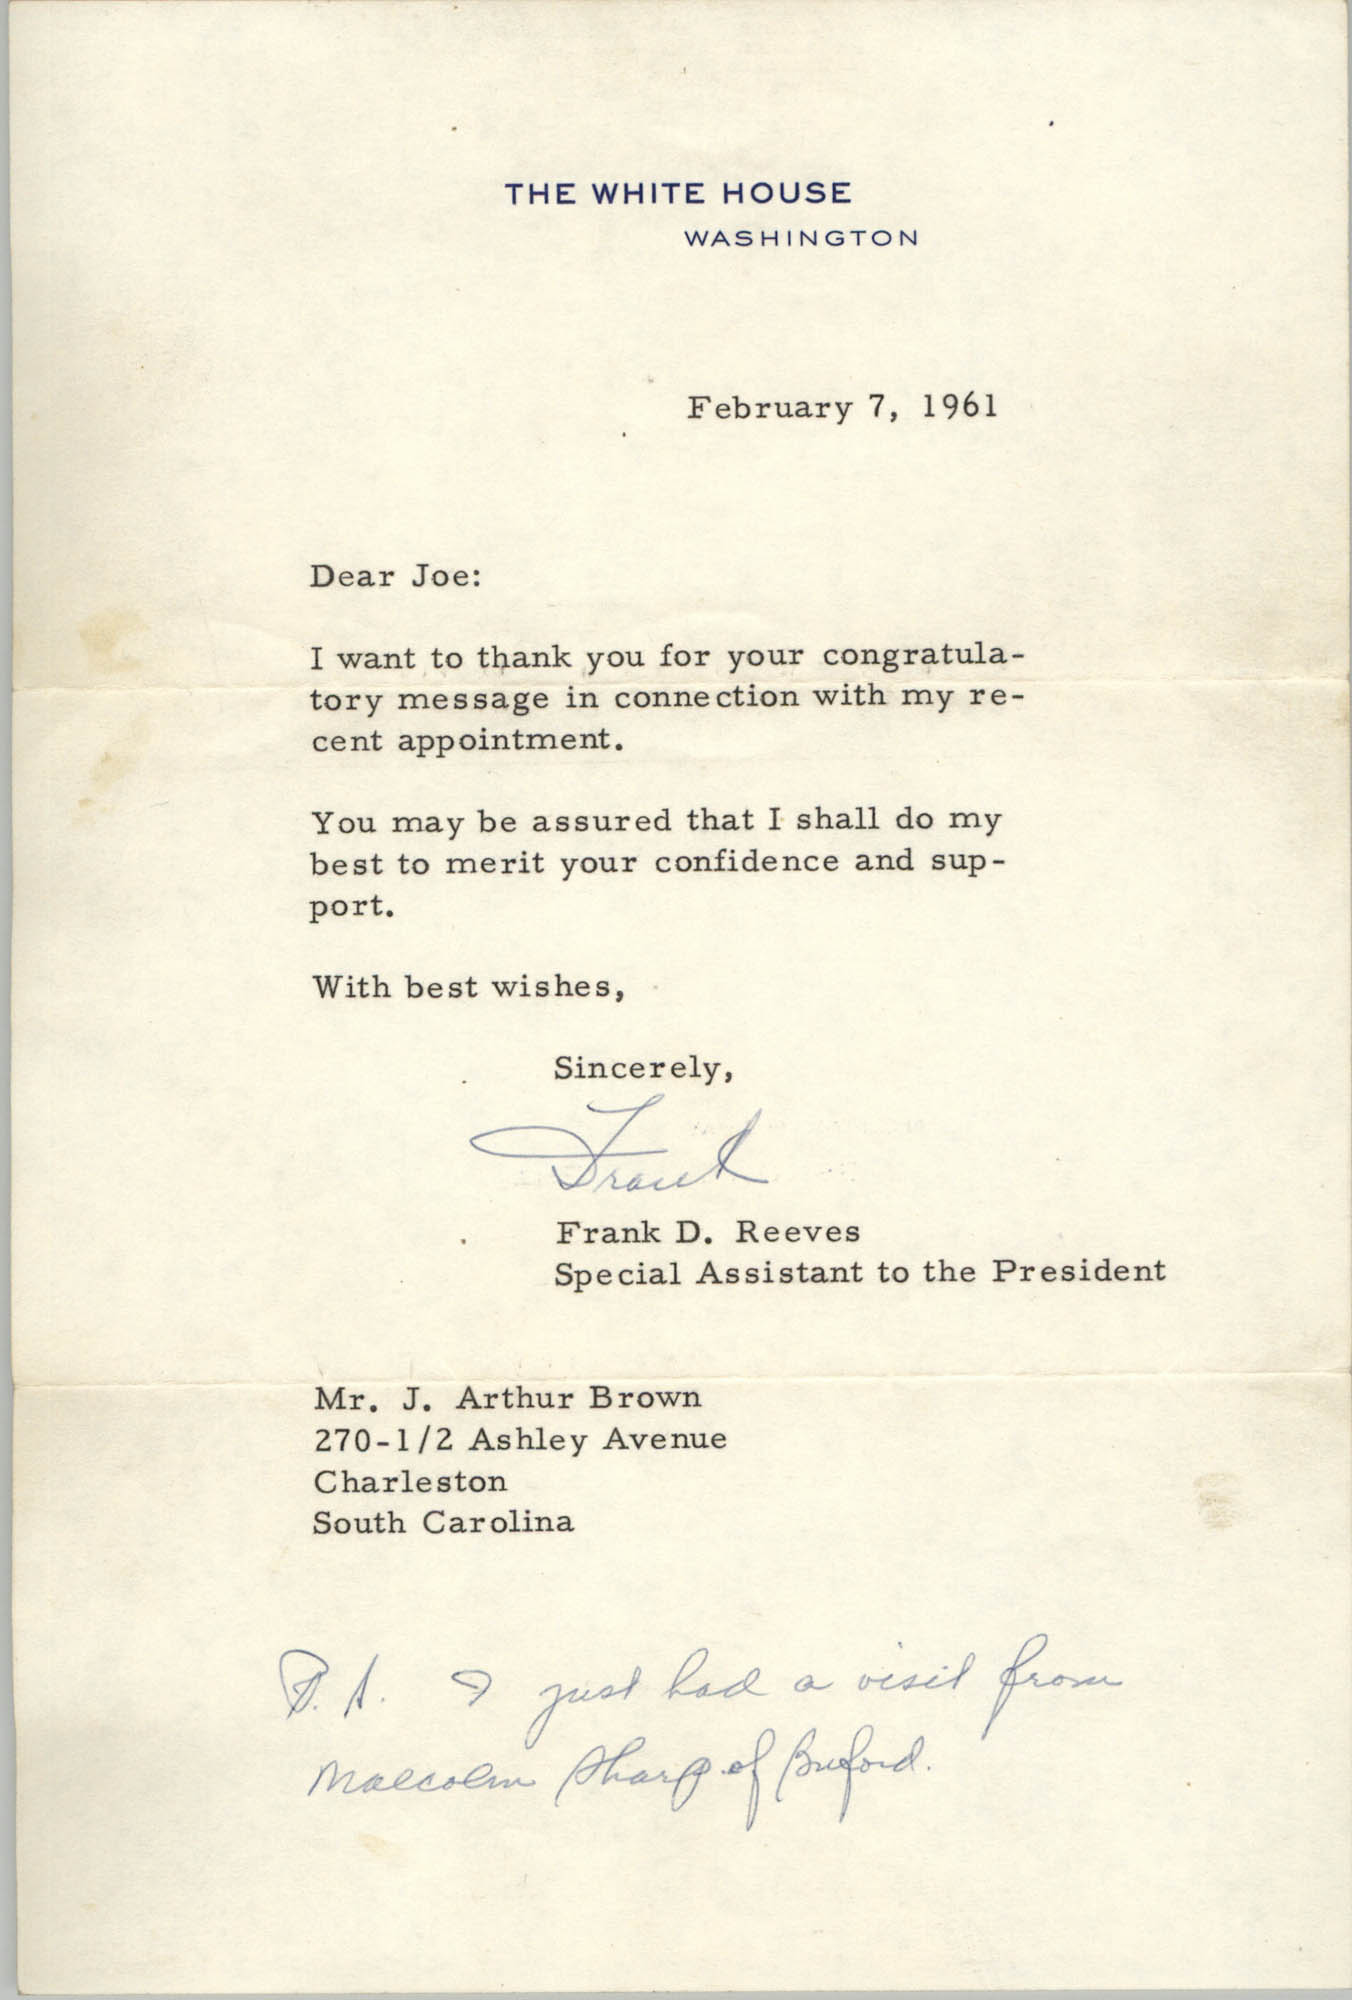 Letter from Frank D. Reeves to J. Arthur Brown, February 7, 1961